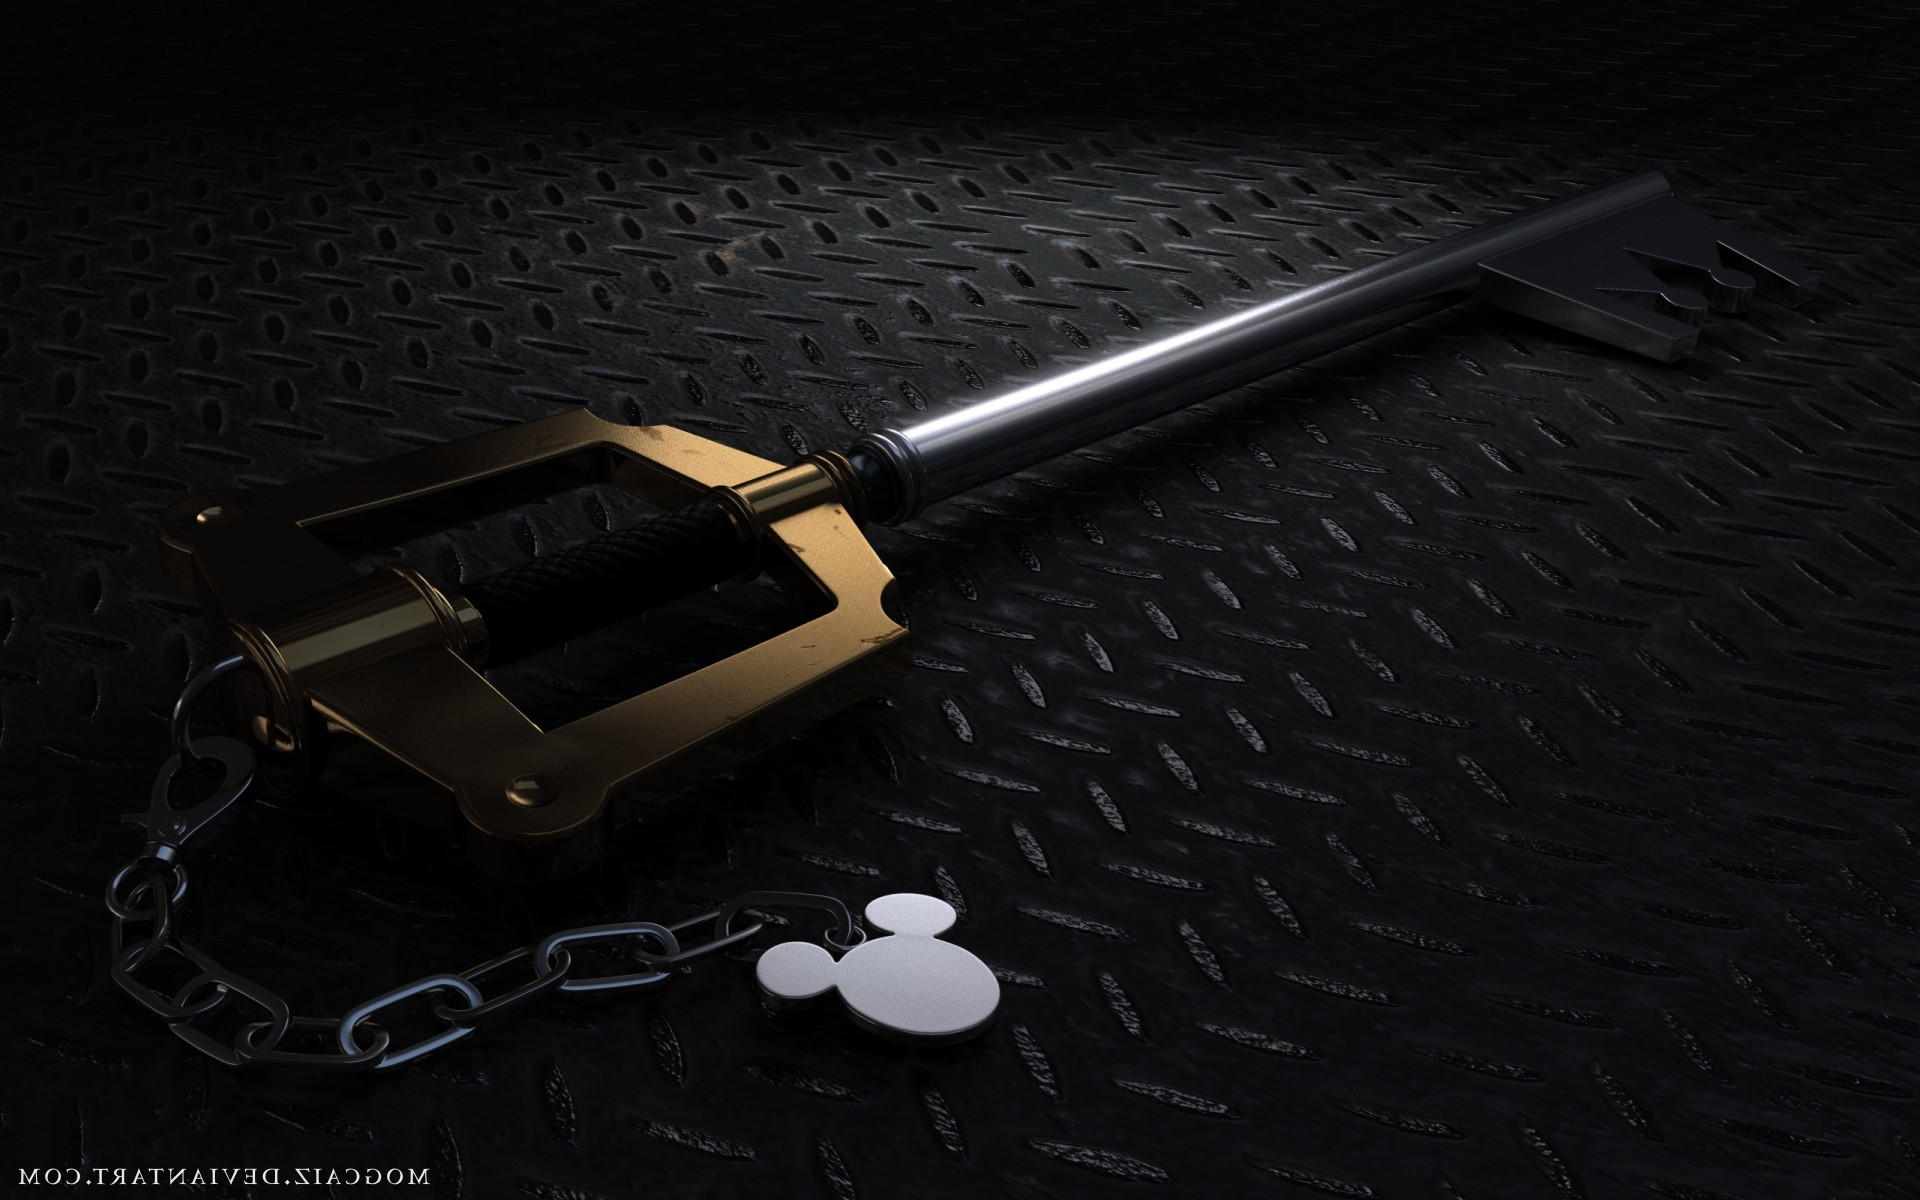 1920x1200 Kingdom Hearts Keyblade Wallpaper